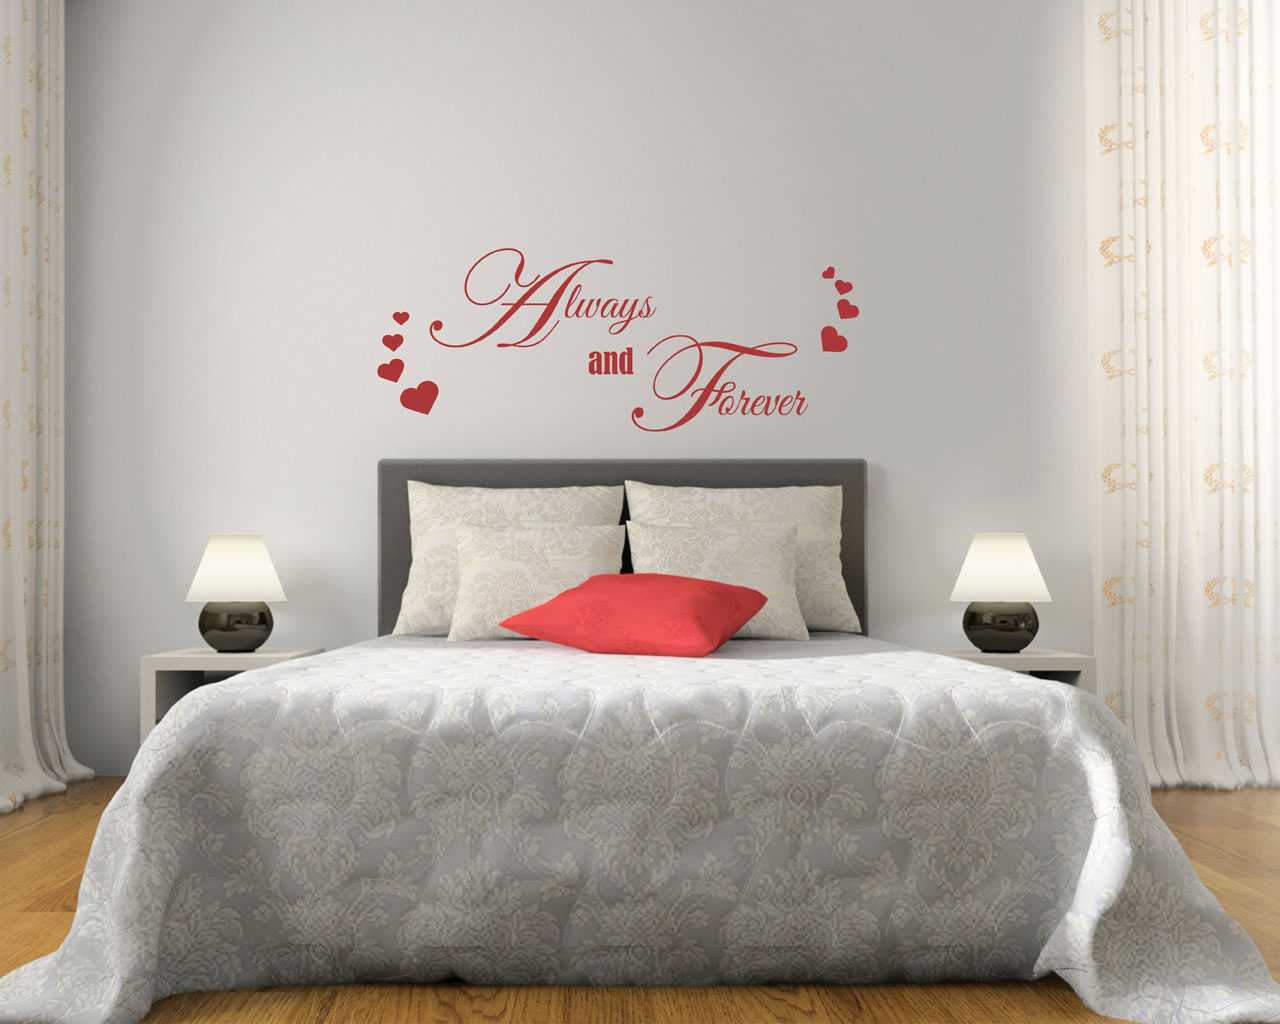 Always and forever amore adesivo murale interni - Decorazioni per camere da letto ...